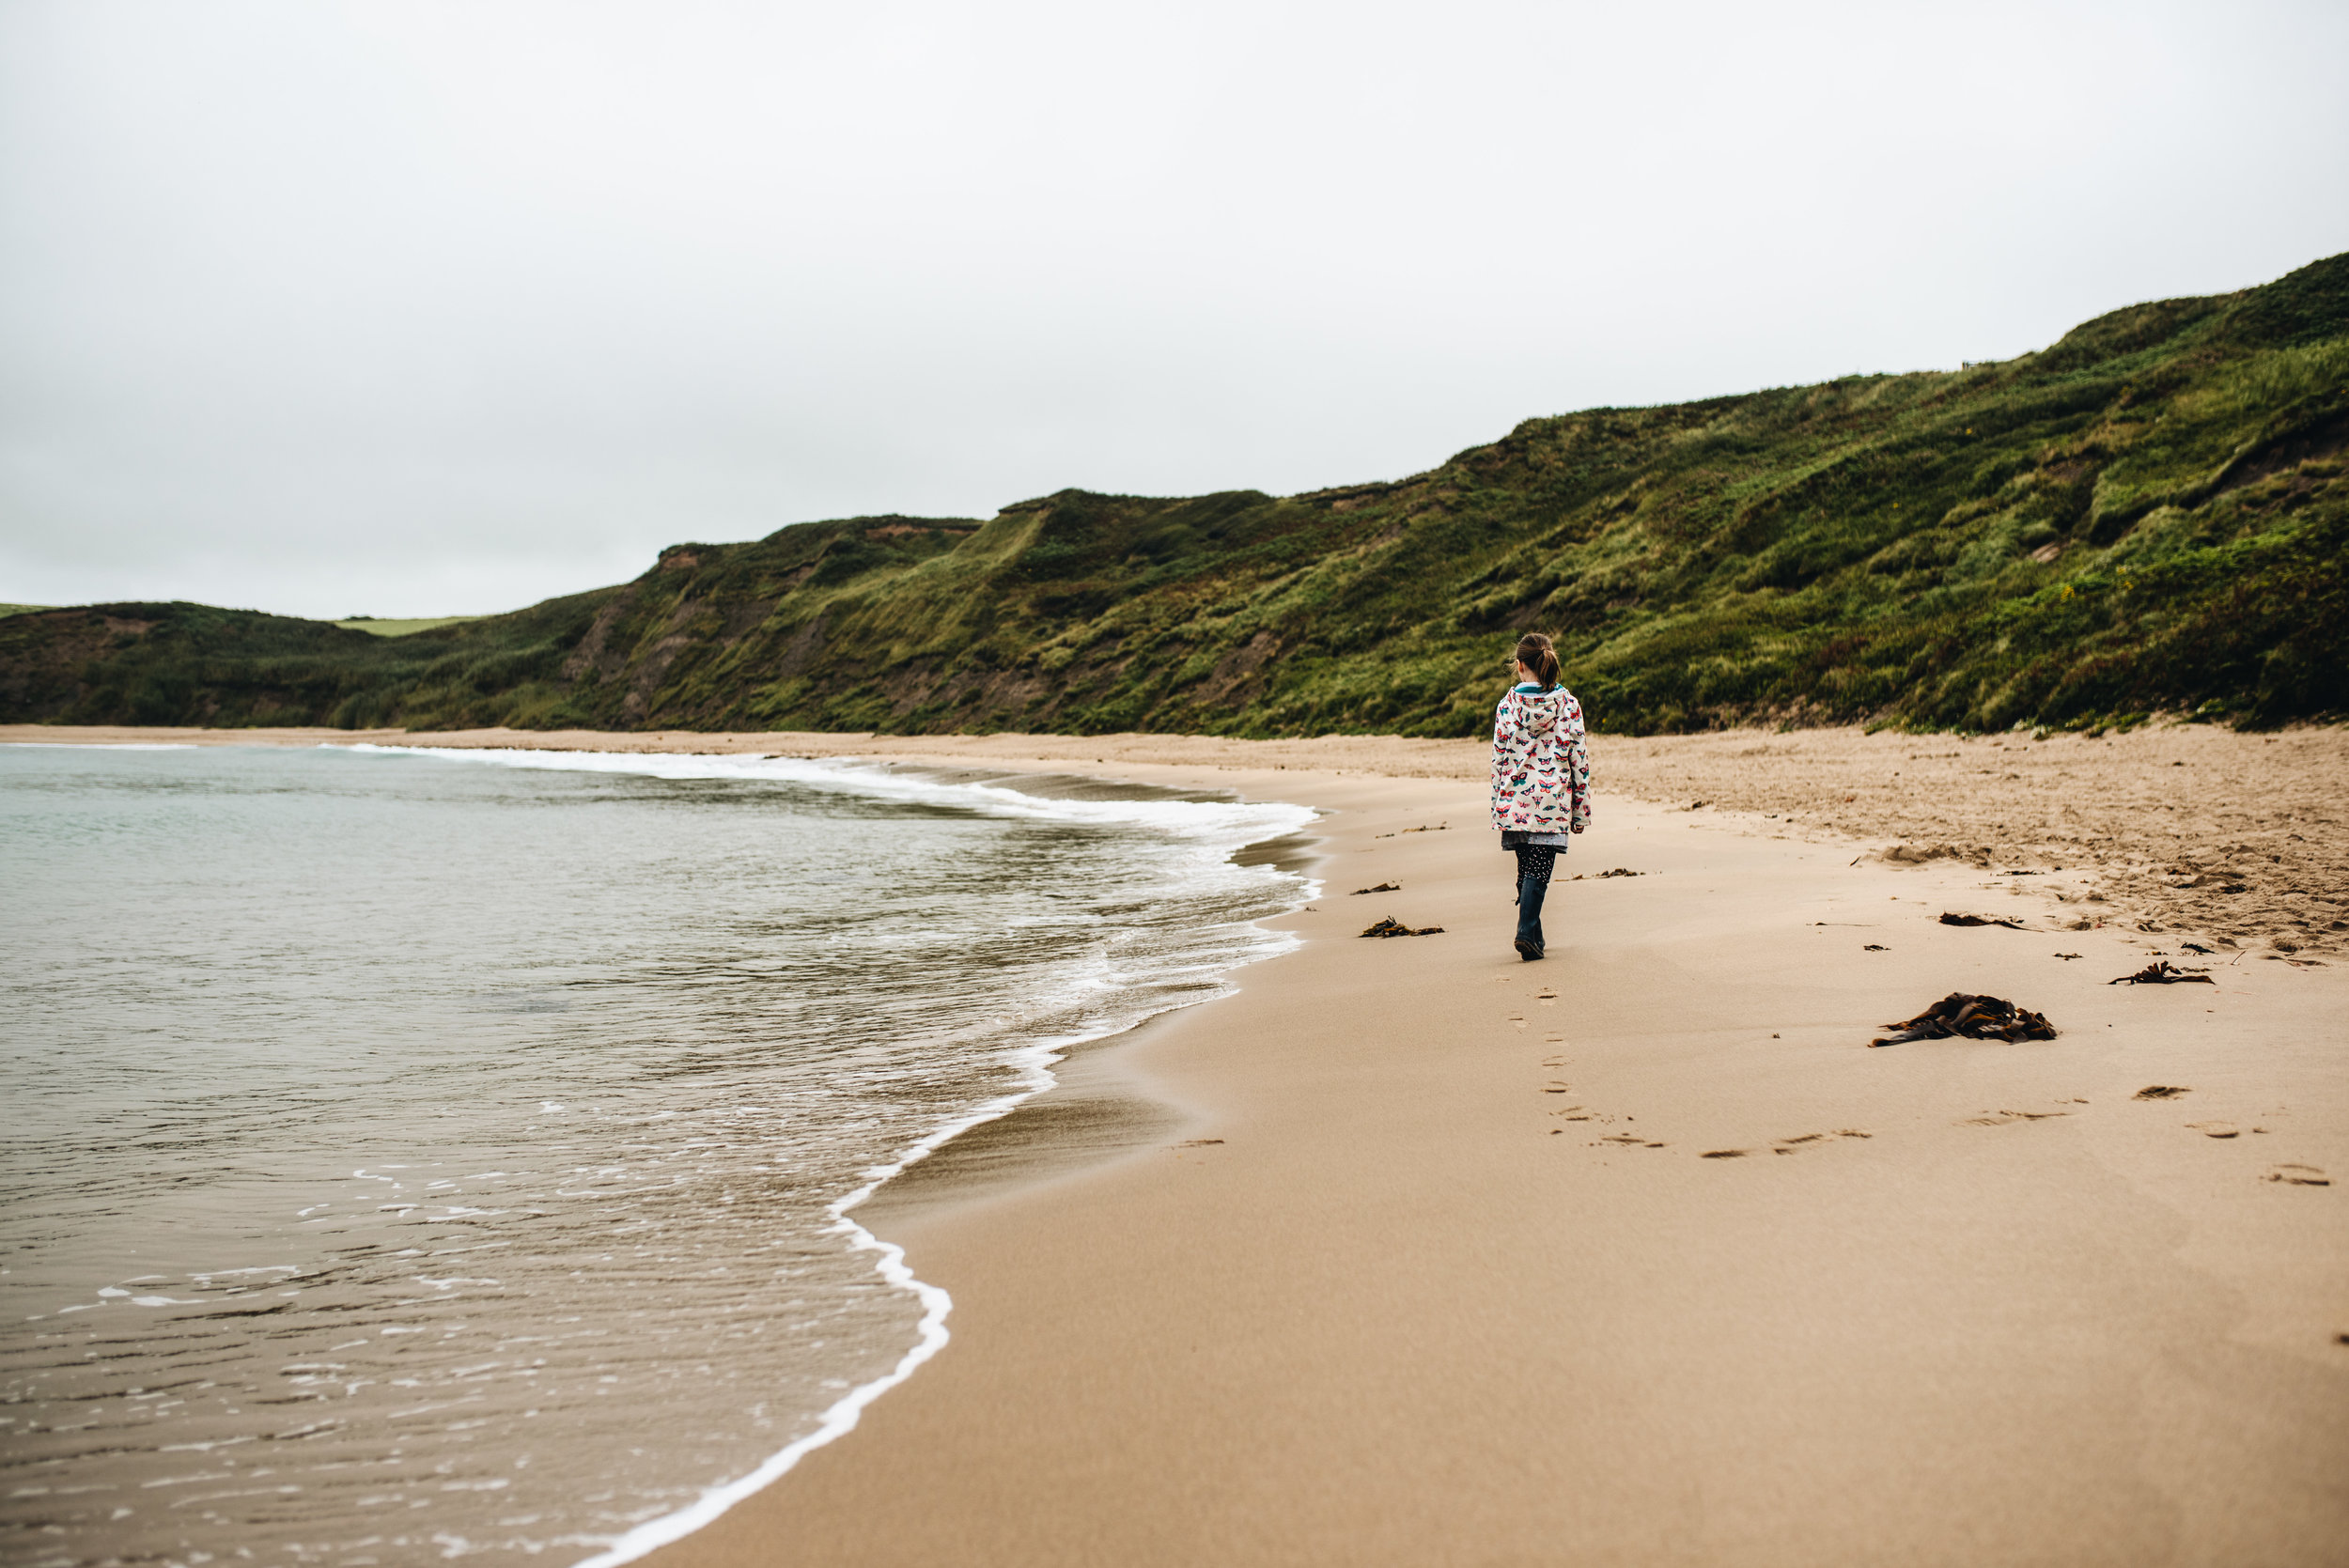 A holiday in North Wales - Llyn Peninsula - Whistling Sands